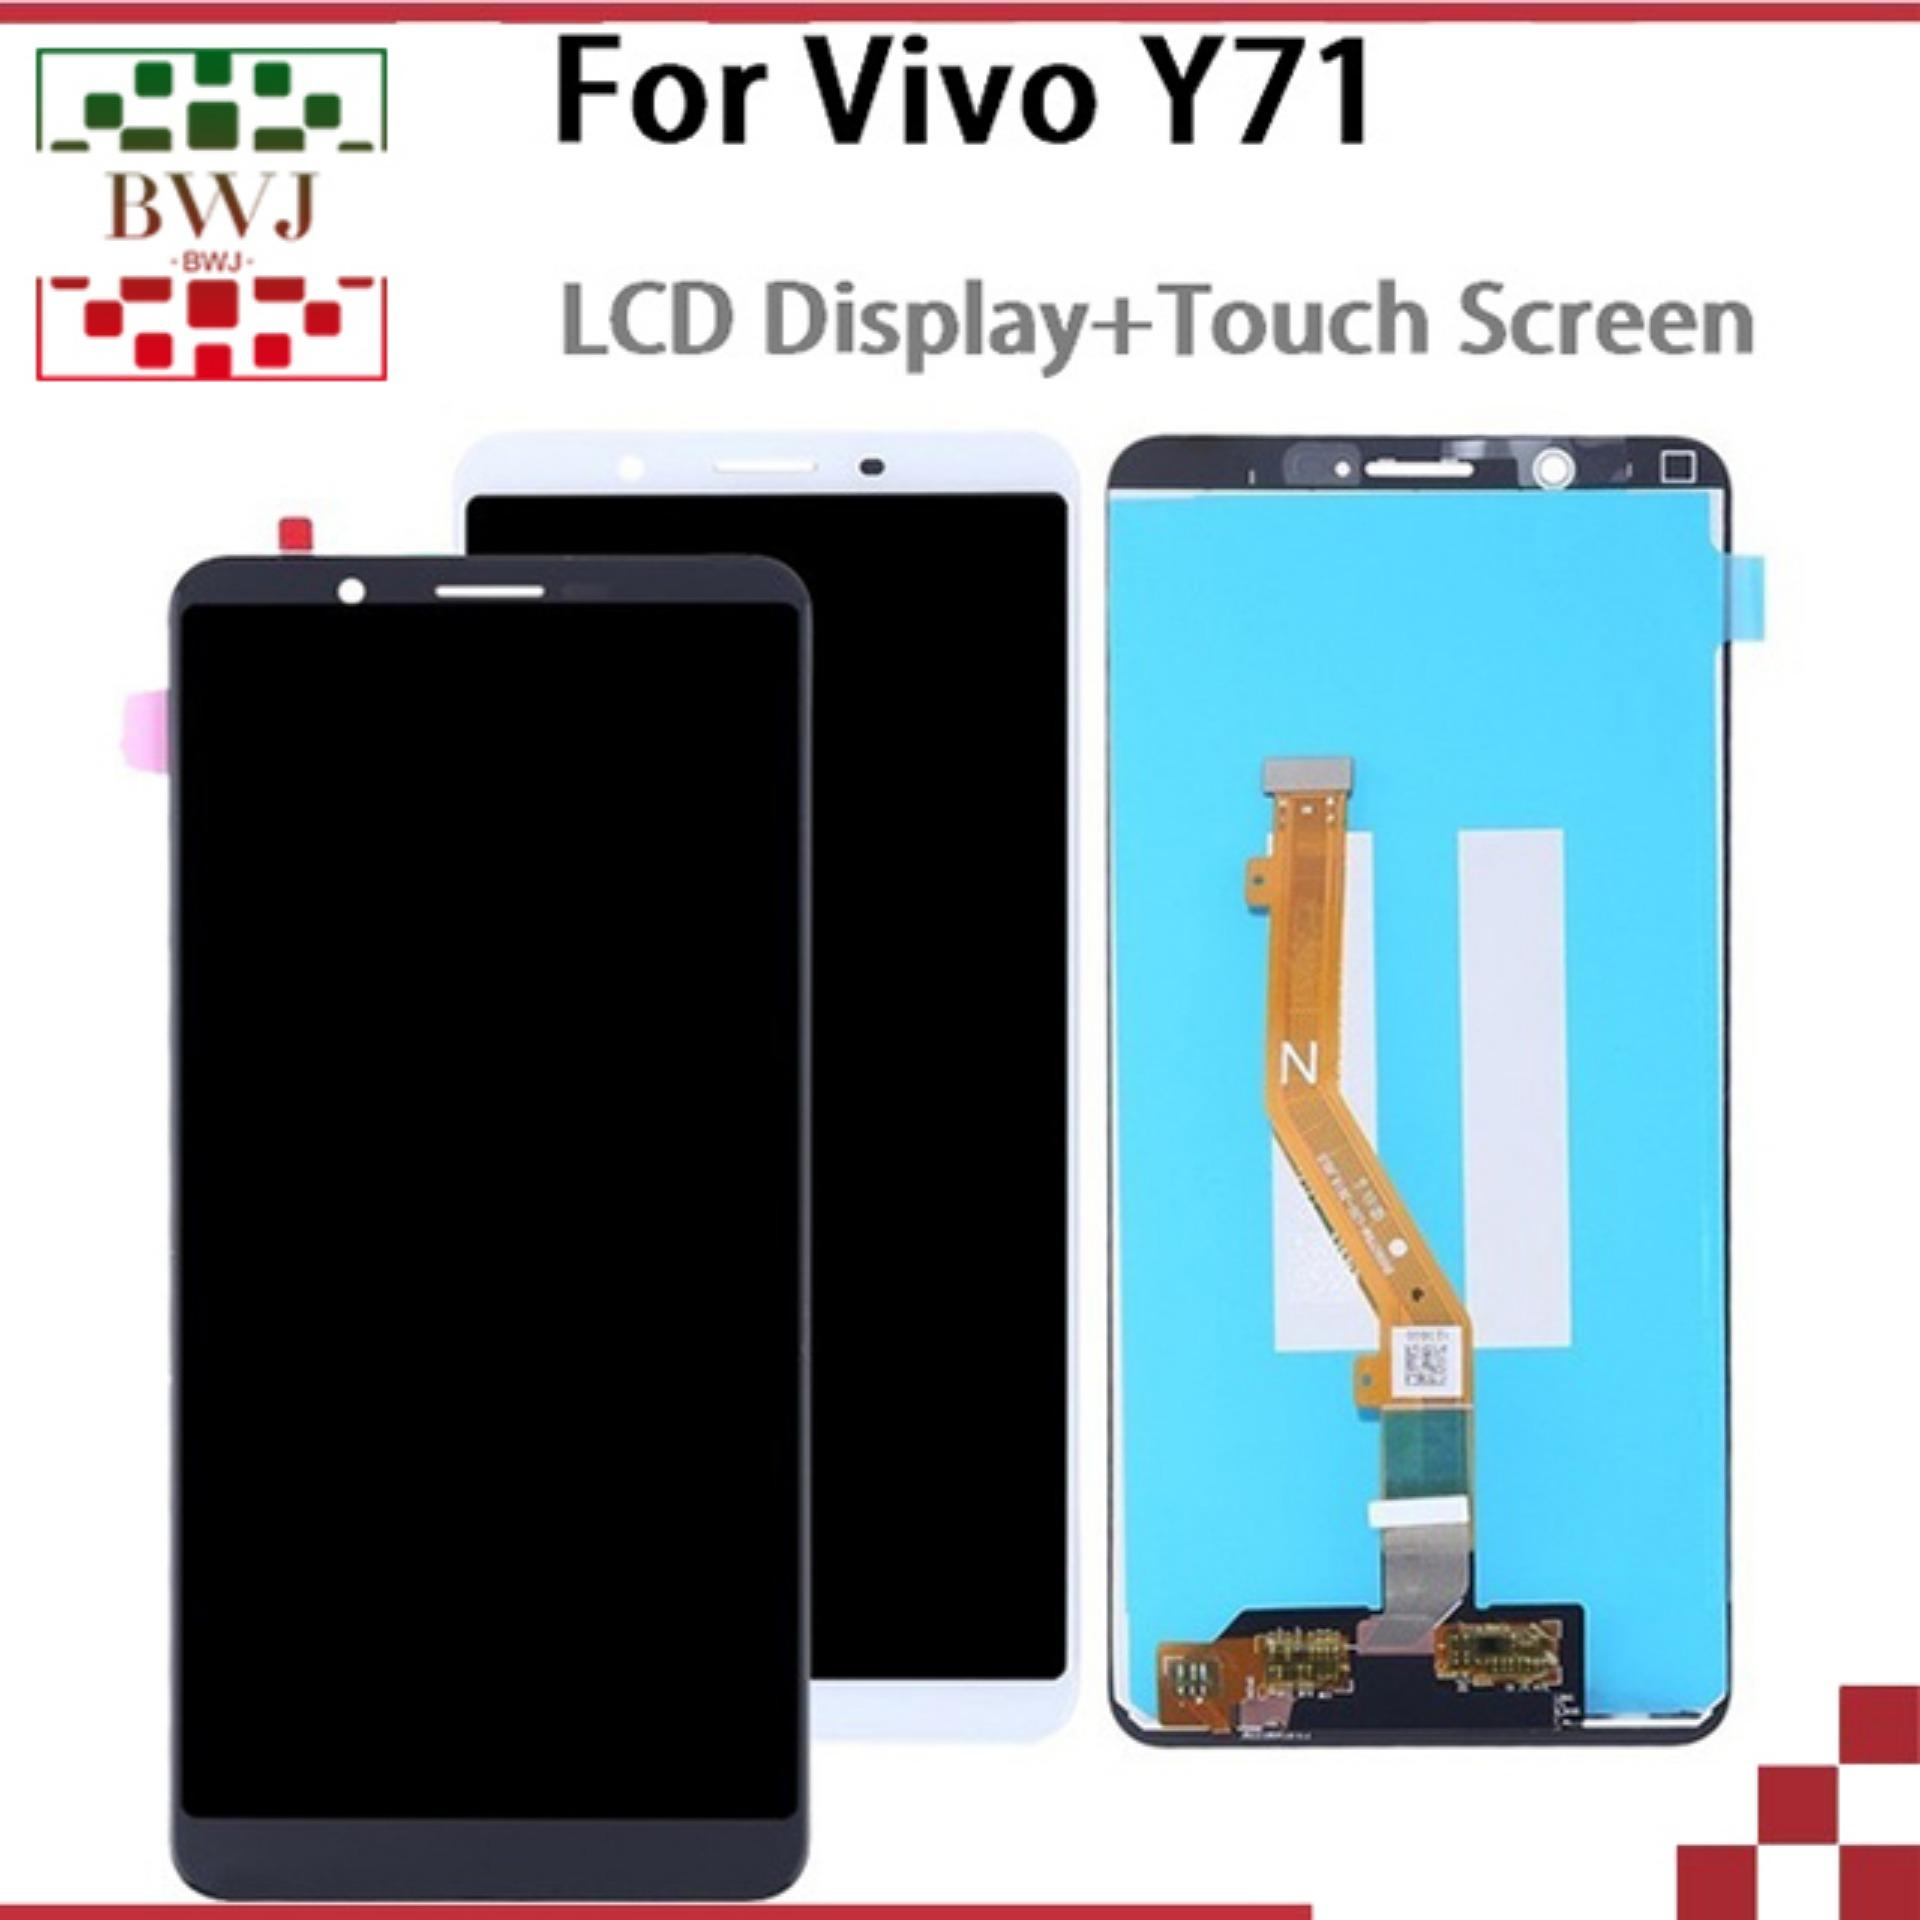 For Vivo Y71 LCD in Mobile phone LCD Display+Touch Screen Digitizer Assembly